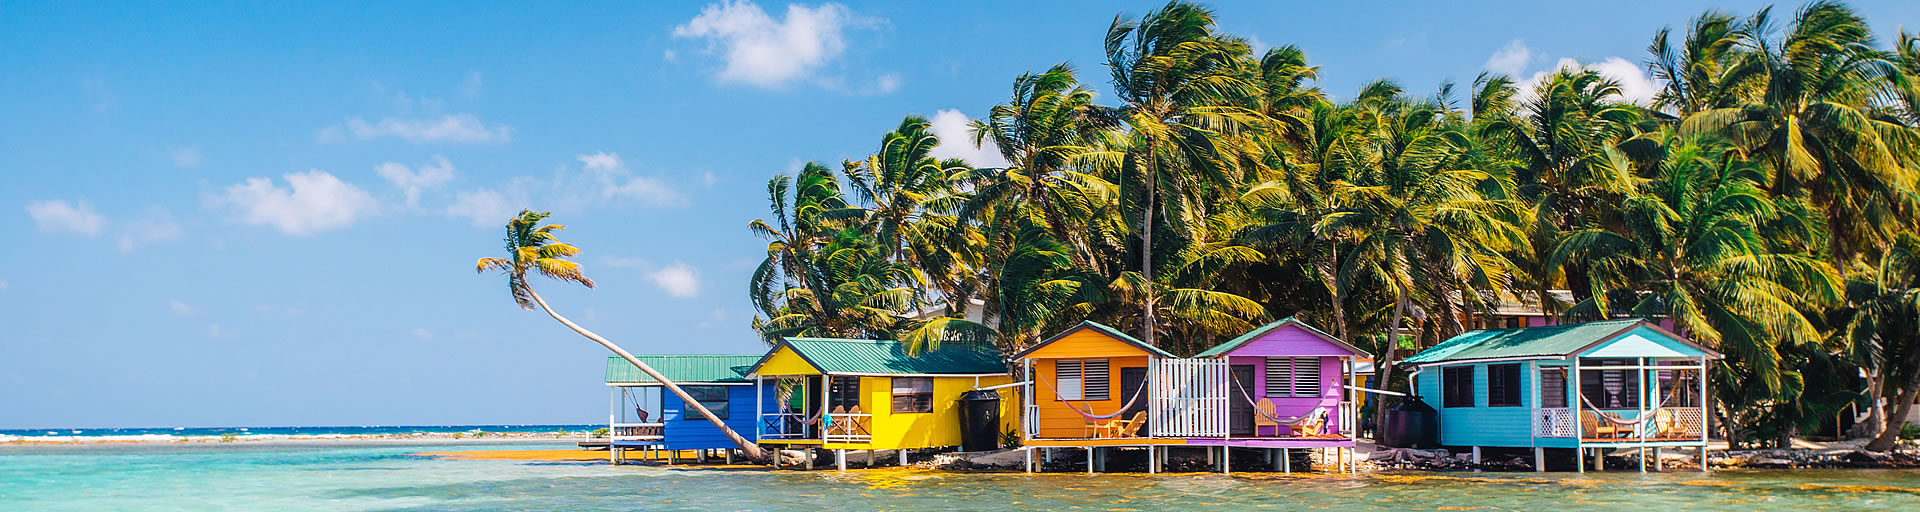 Tobacco Caye Paradise Islands Belize